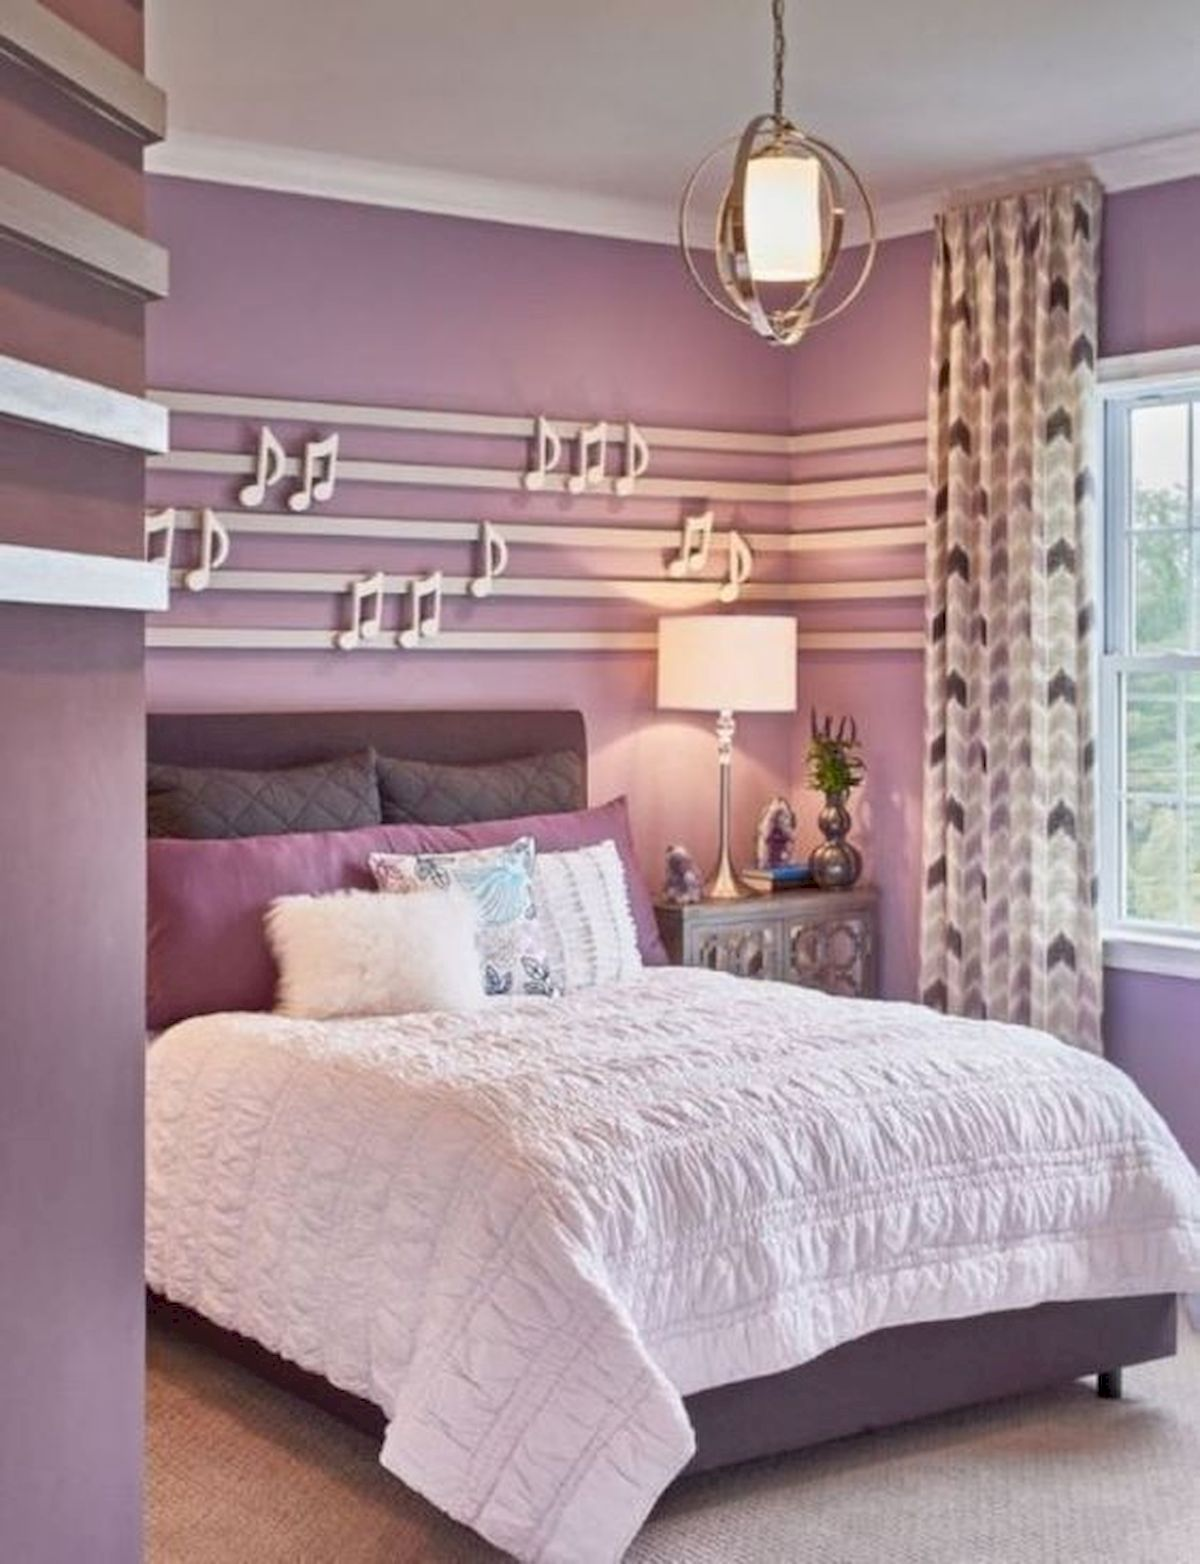 60 Cute DIY Bedroom Design And Decor Ideas For Kids (15)